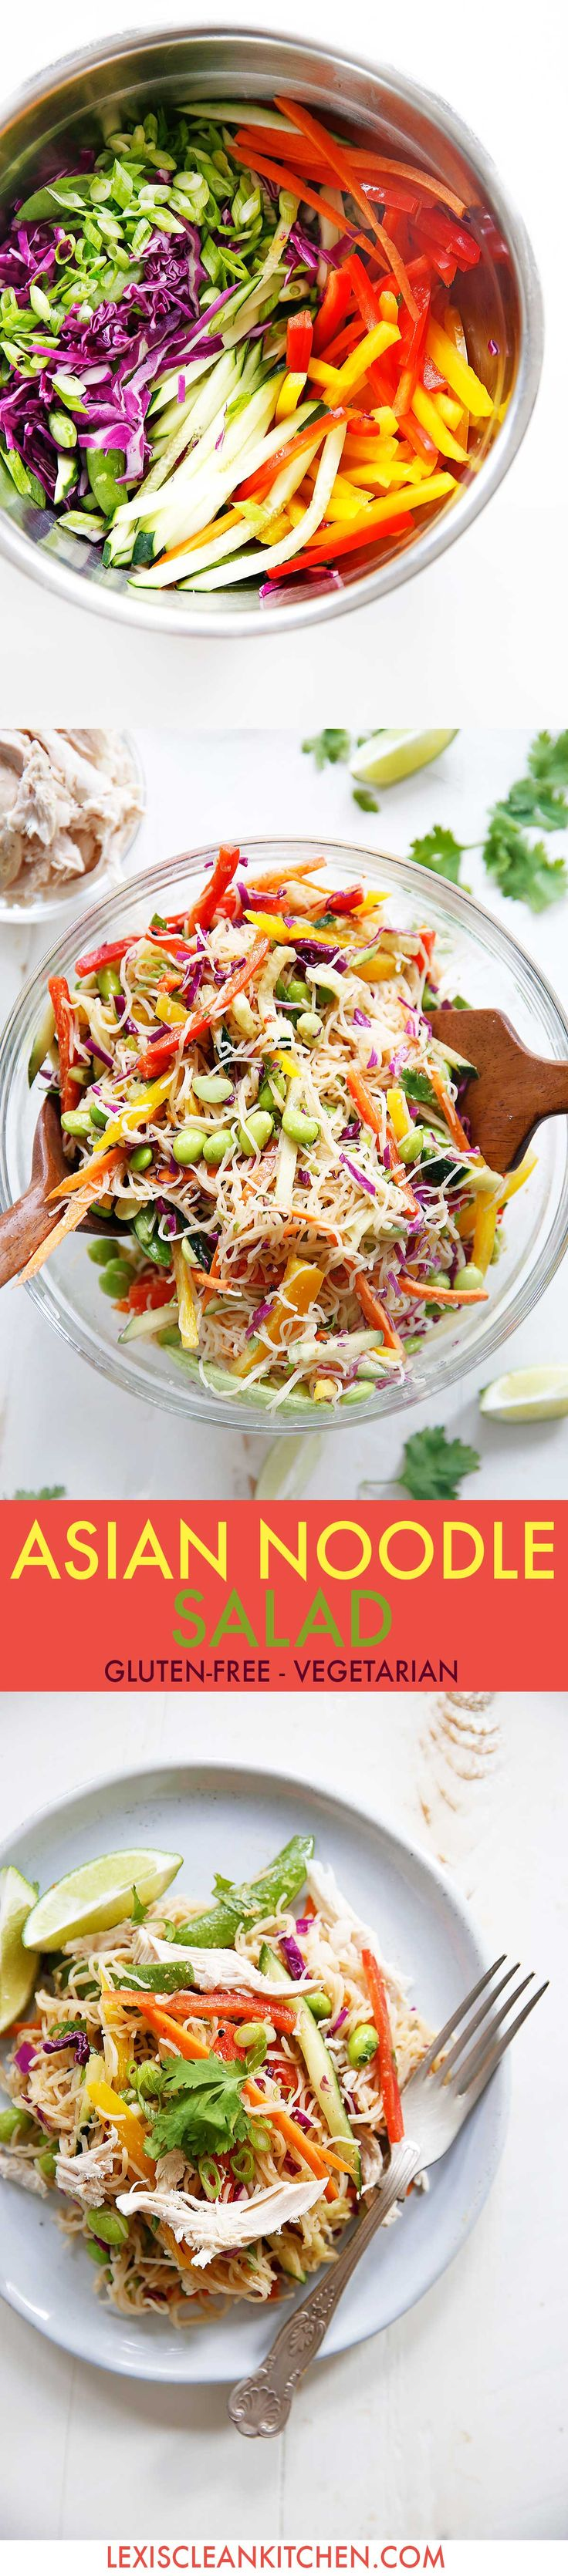 Gluten Free Cold Asian Noodle Salad {Gluten-free, no added sugar, 30 minutes or less, vegetarian option} | Lexi's Clean Kitchen